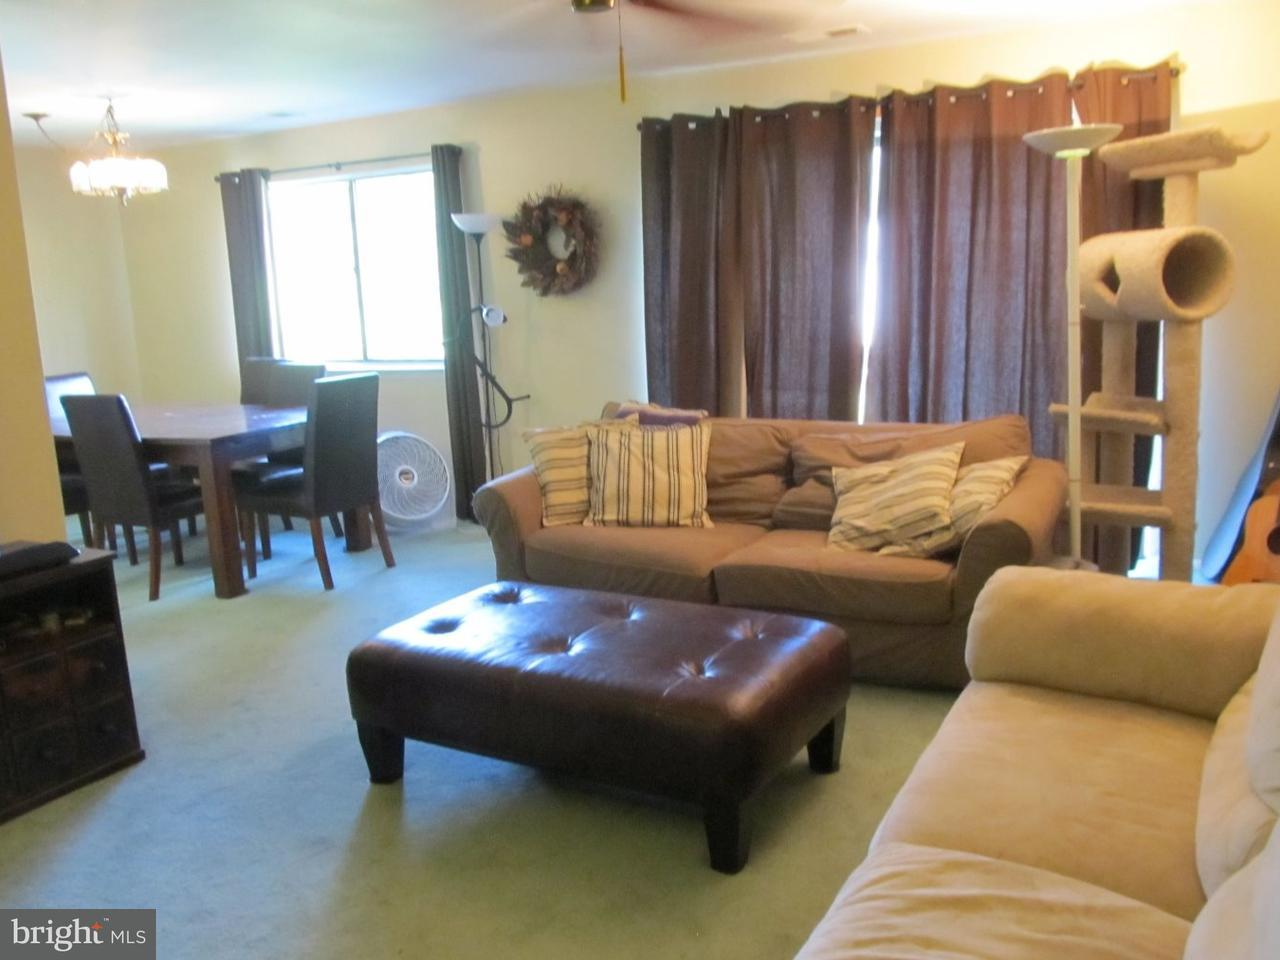 Condominium for Rent at 115 E KINGS HWY #316 Maple Shade, New Jersey 08052 United States